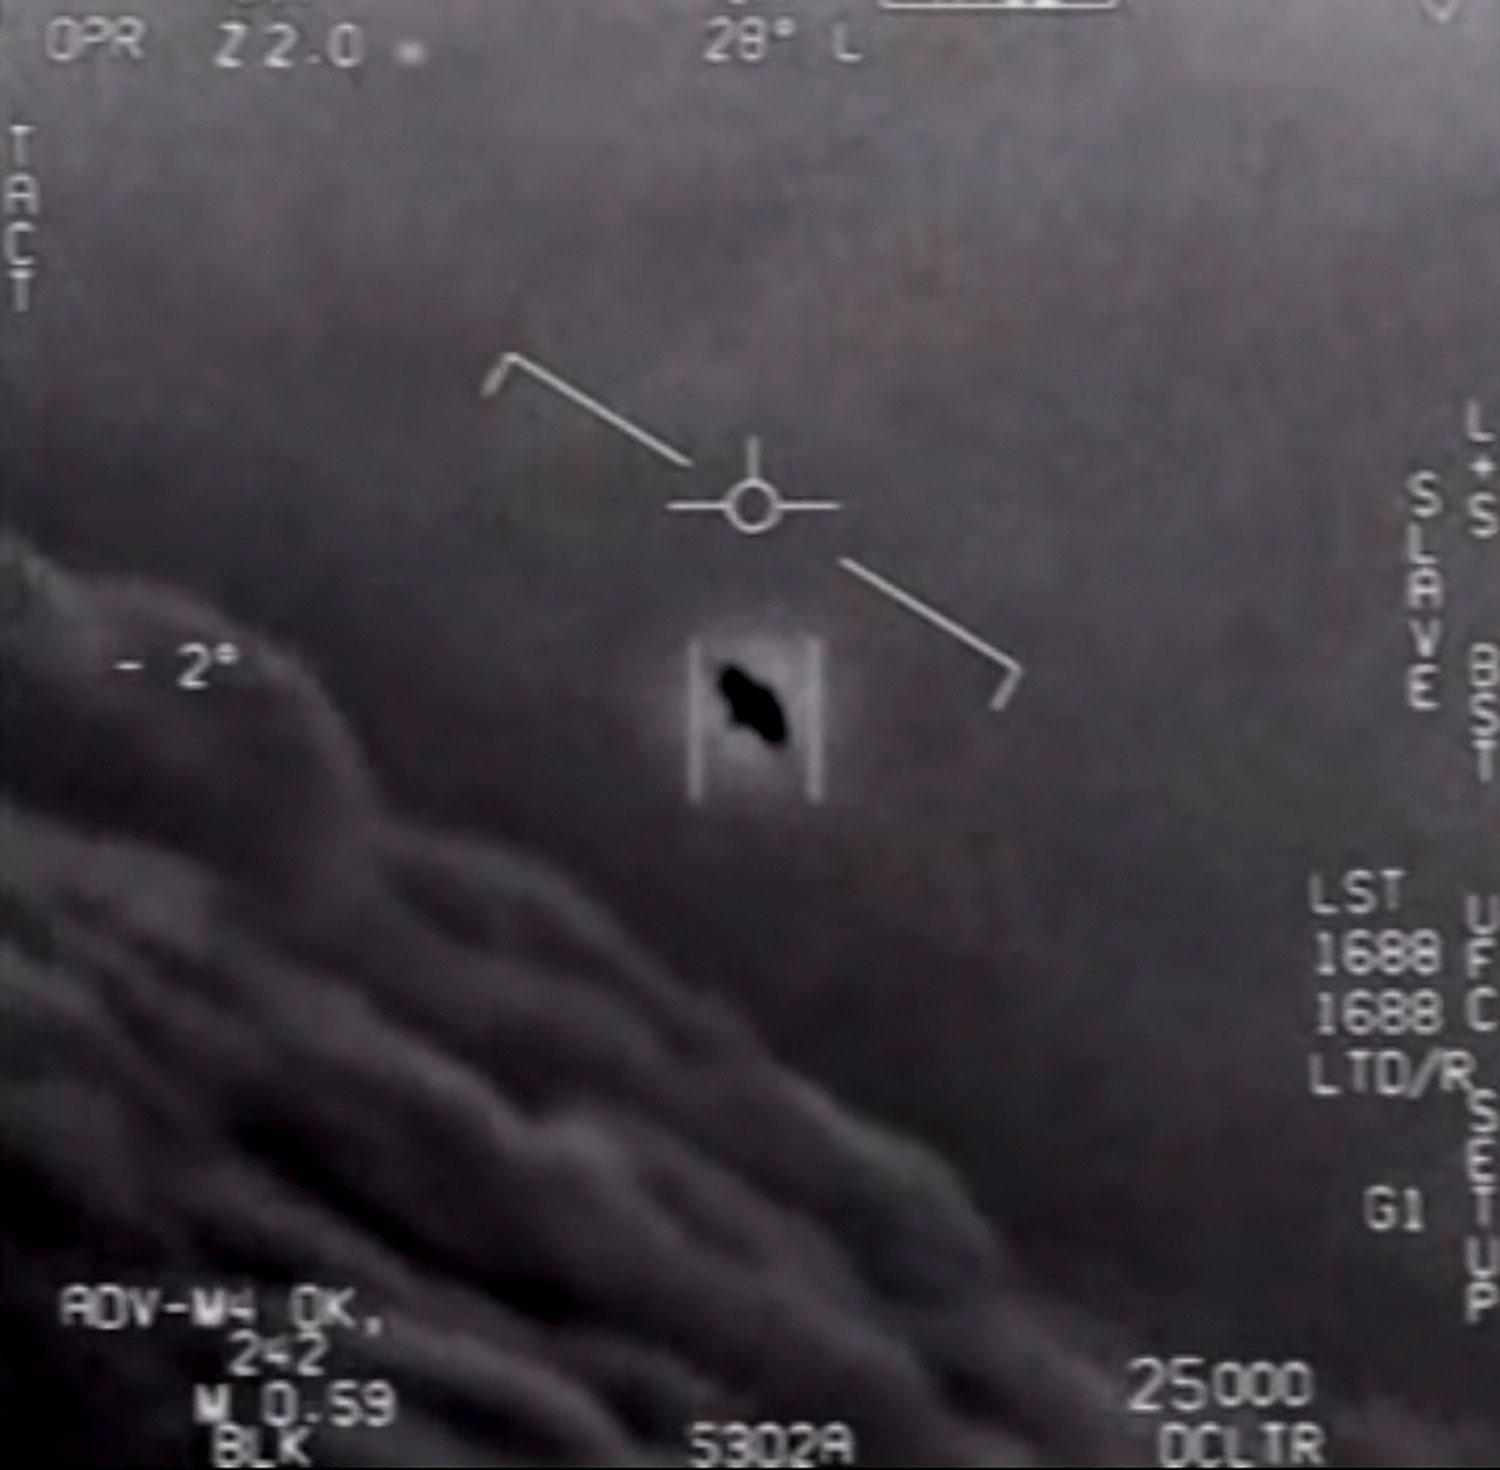 The U.S. Government's Long-Awaited UFO Report Is Here. Its Findings? ¯\_(ツ)_/¯